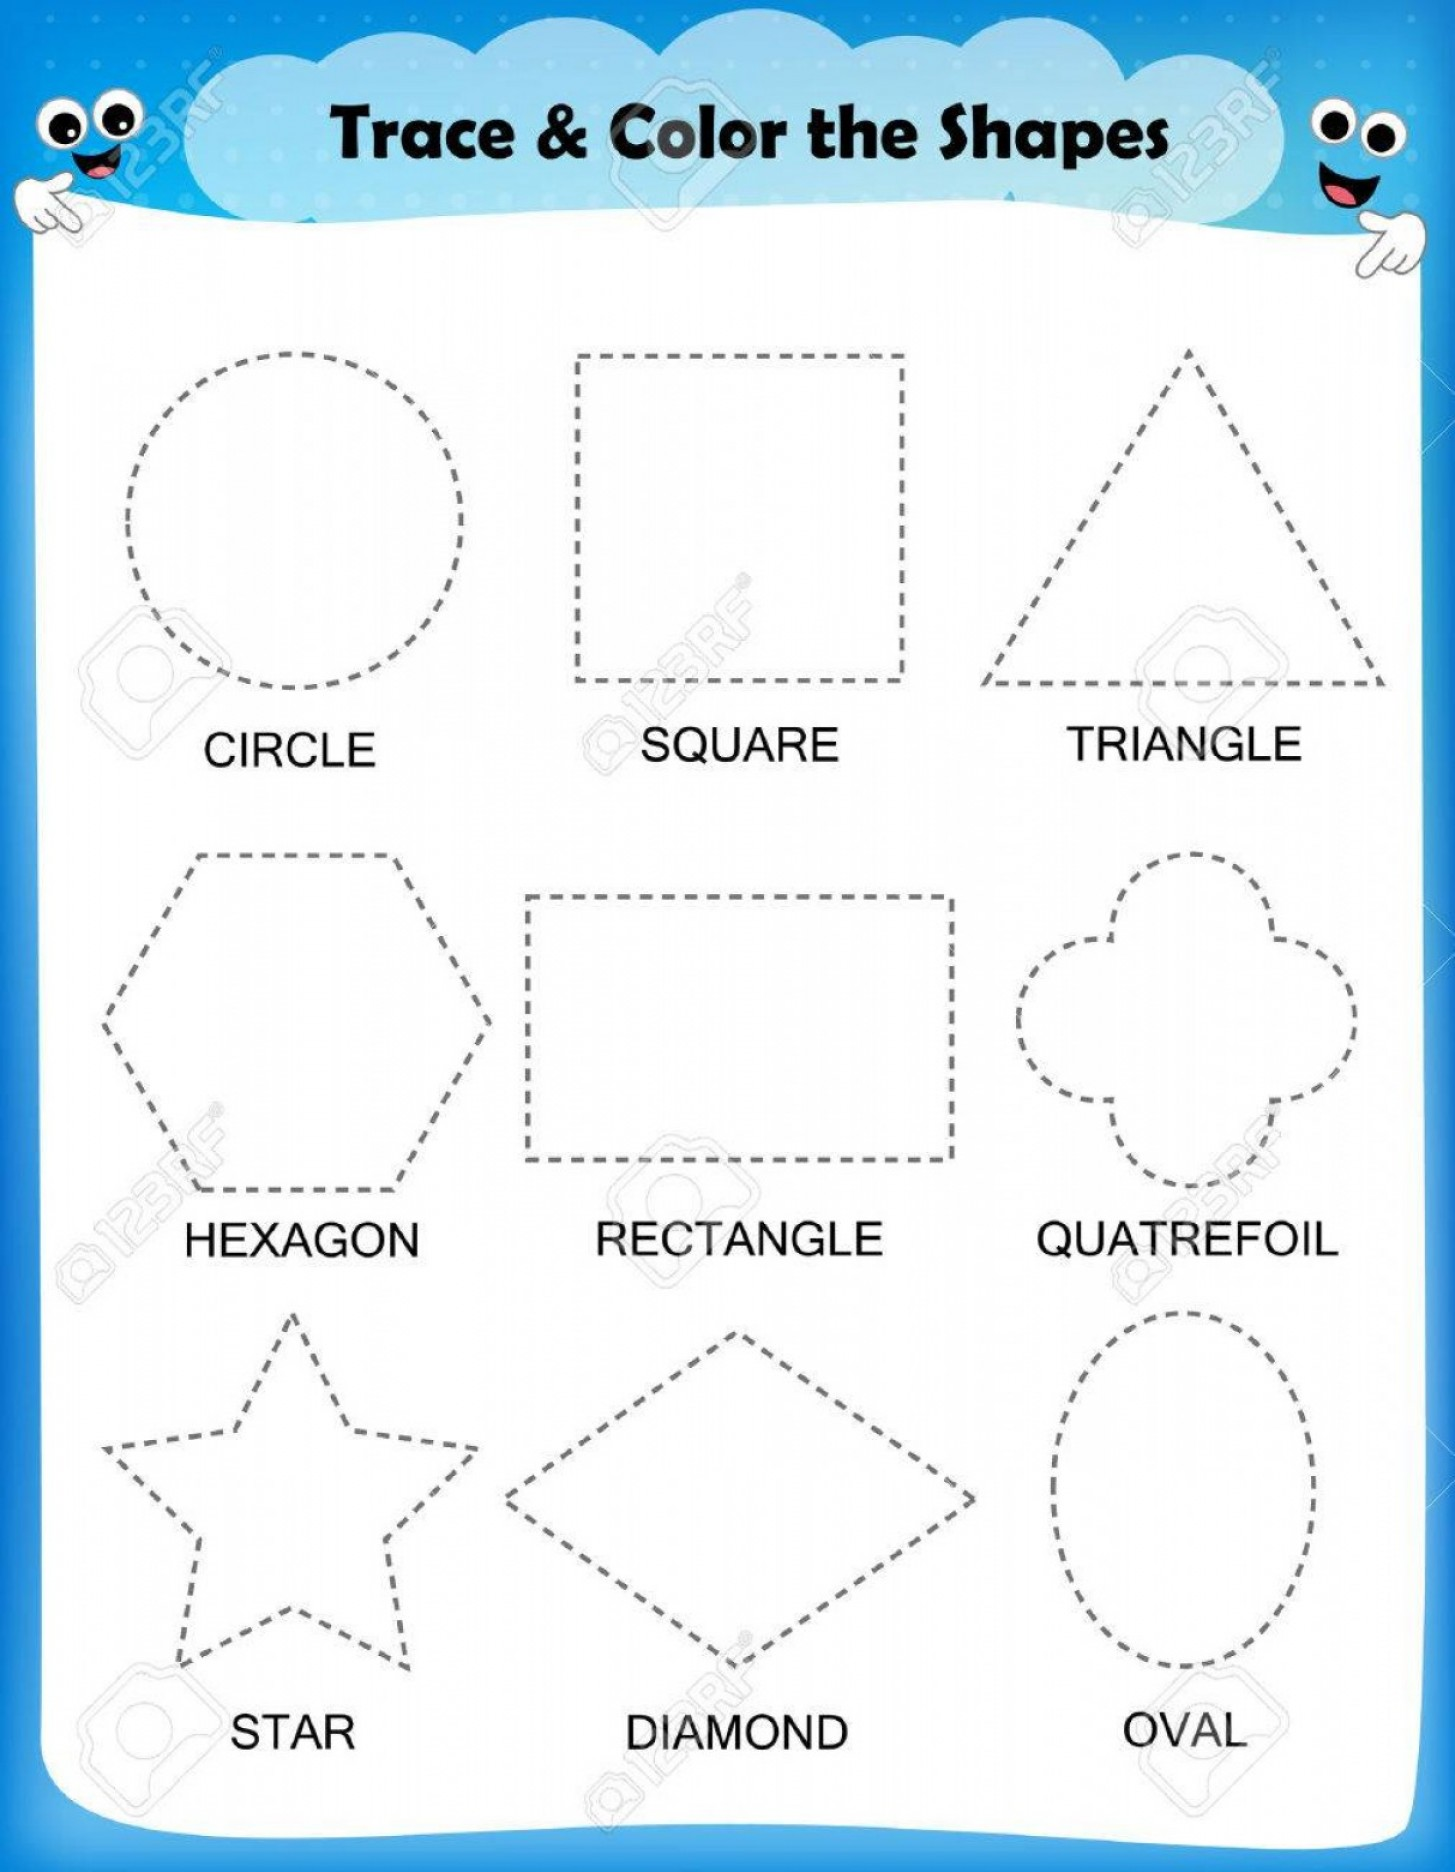 Mosquito Vector Worksheet: Photostock Vector Preschool Worksheet Trace The Shapes And Color Basic Writing And Coloring Practice